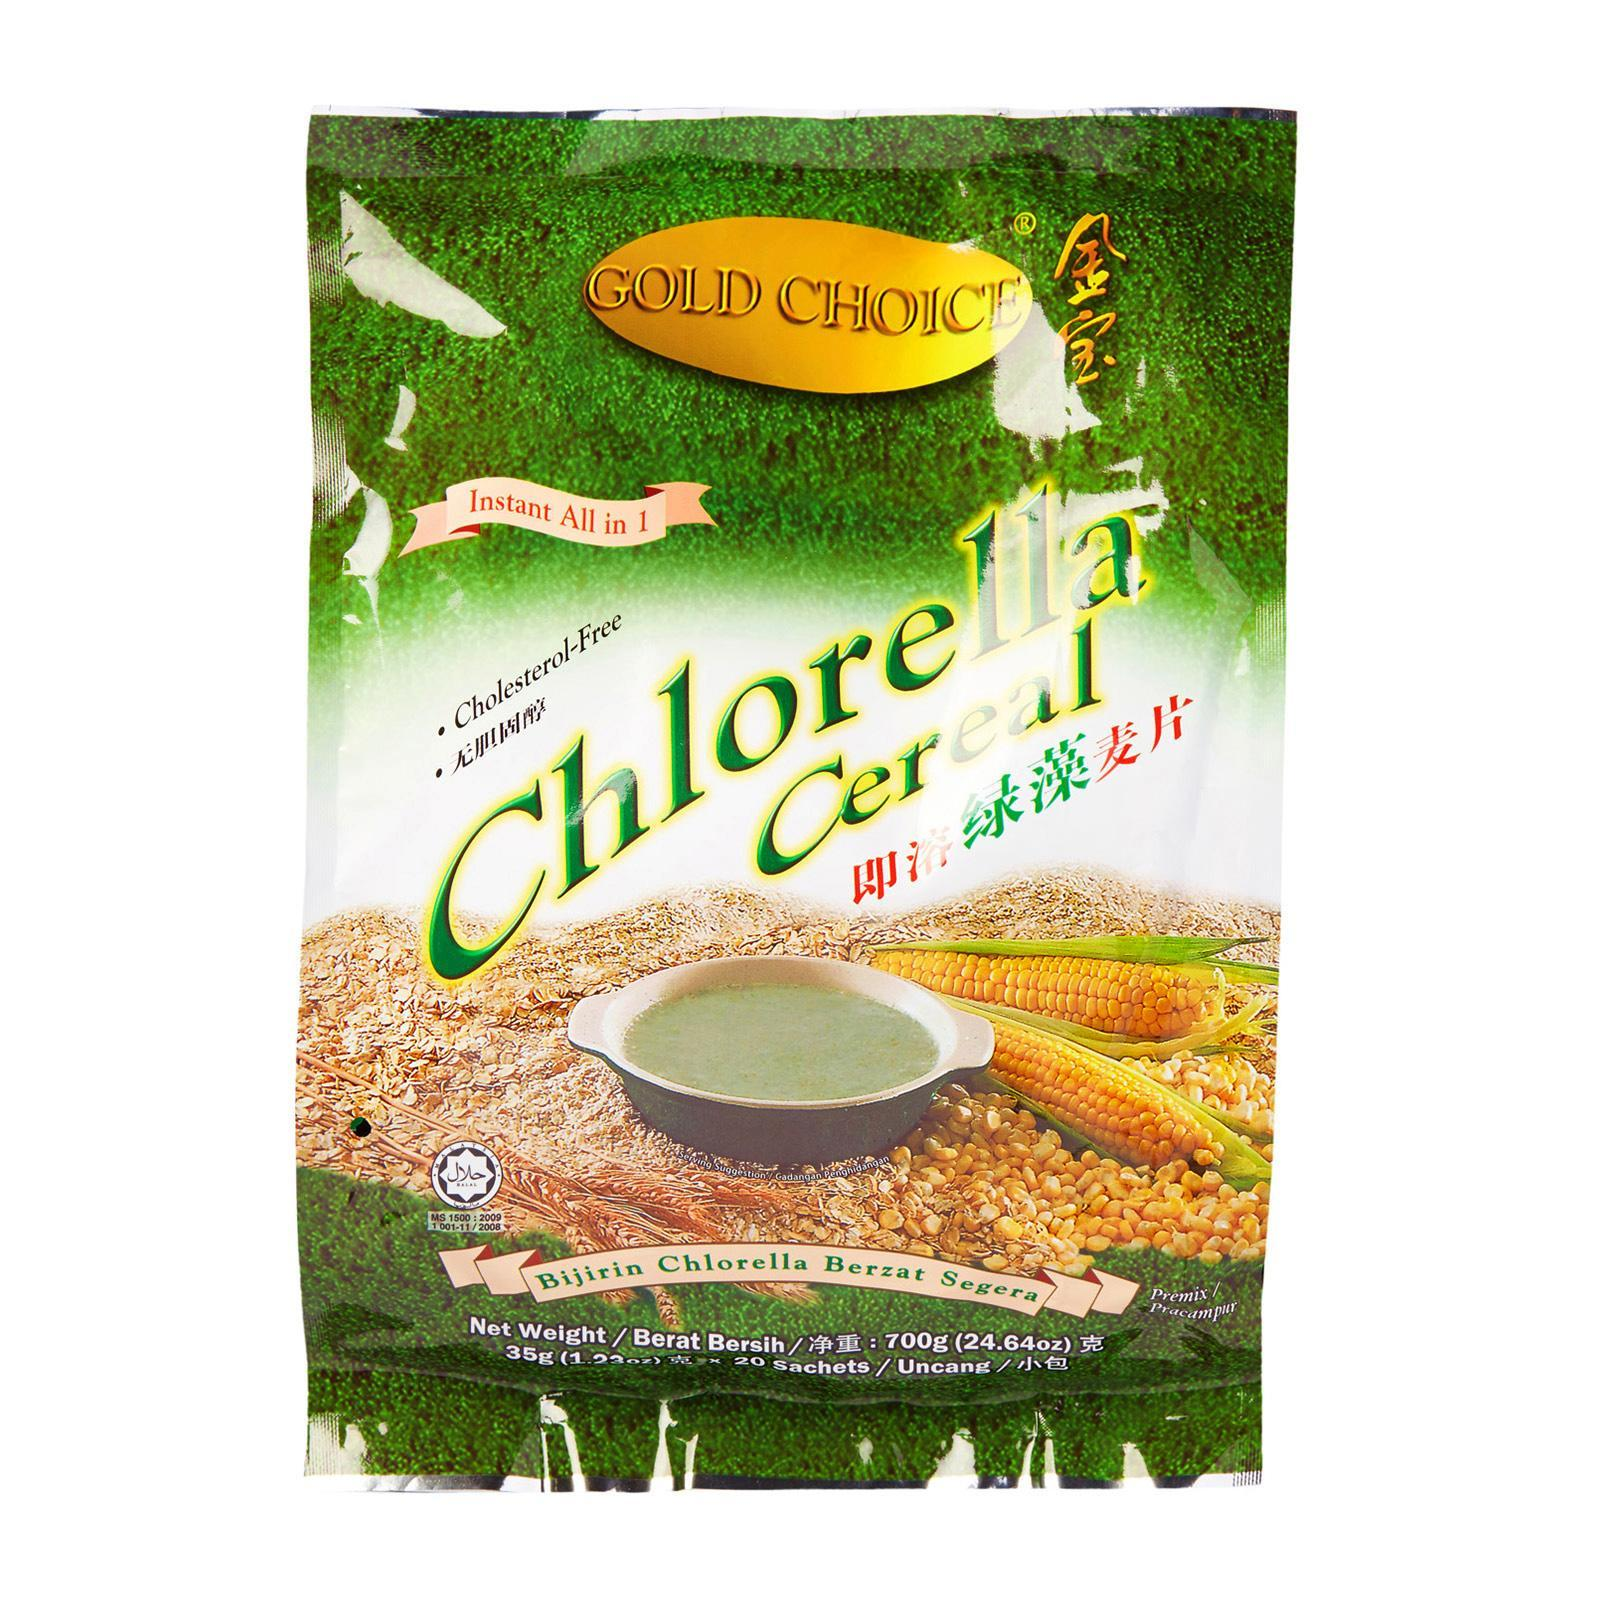 Gold Choice Chlorella Cereal Premix By Redmart.